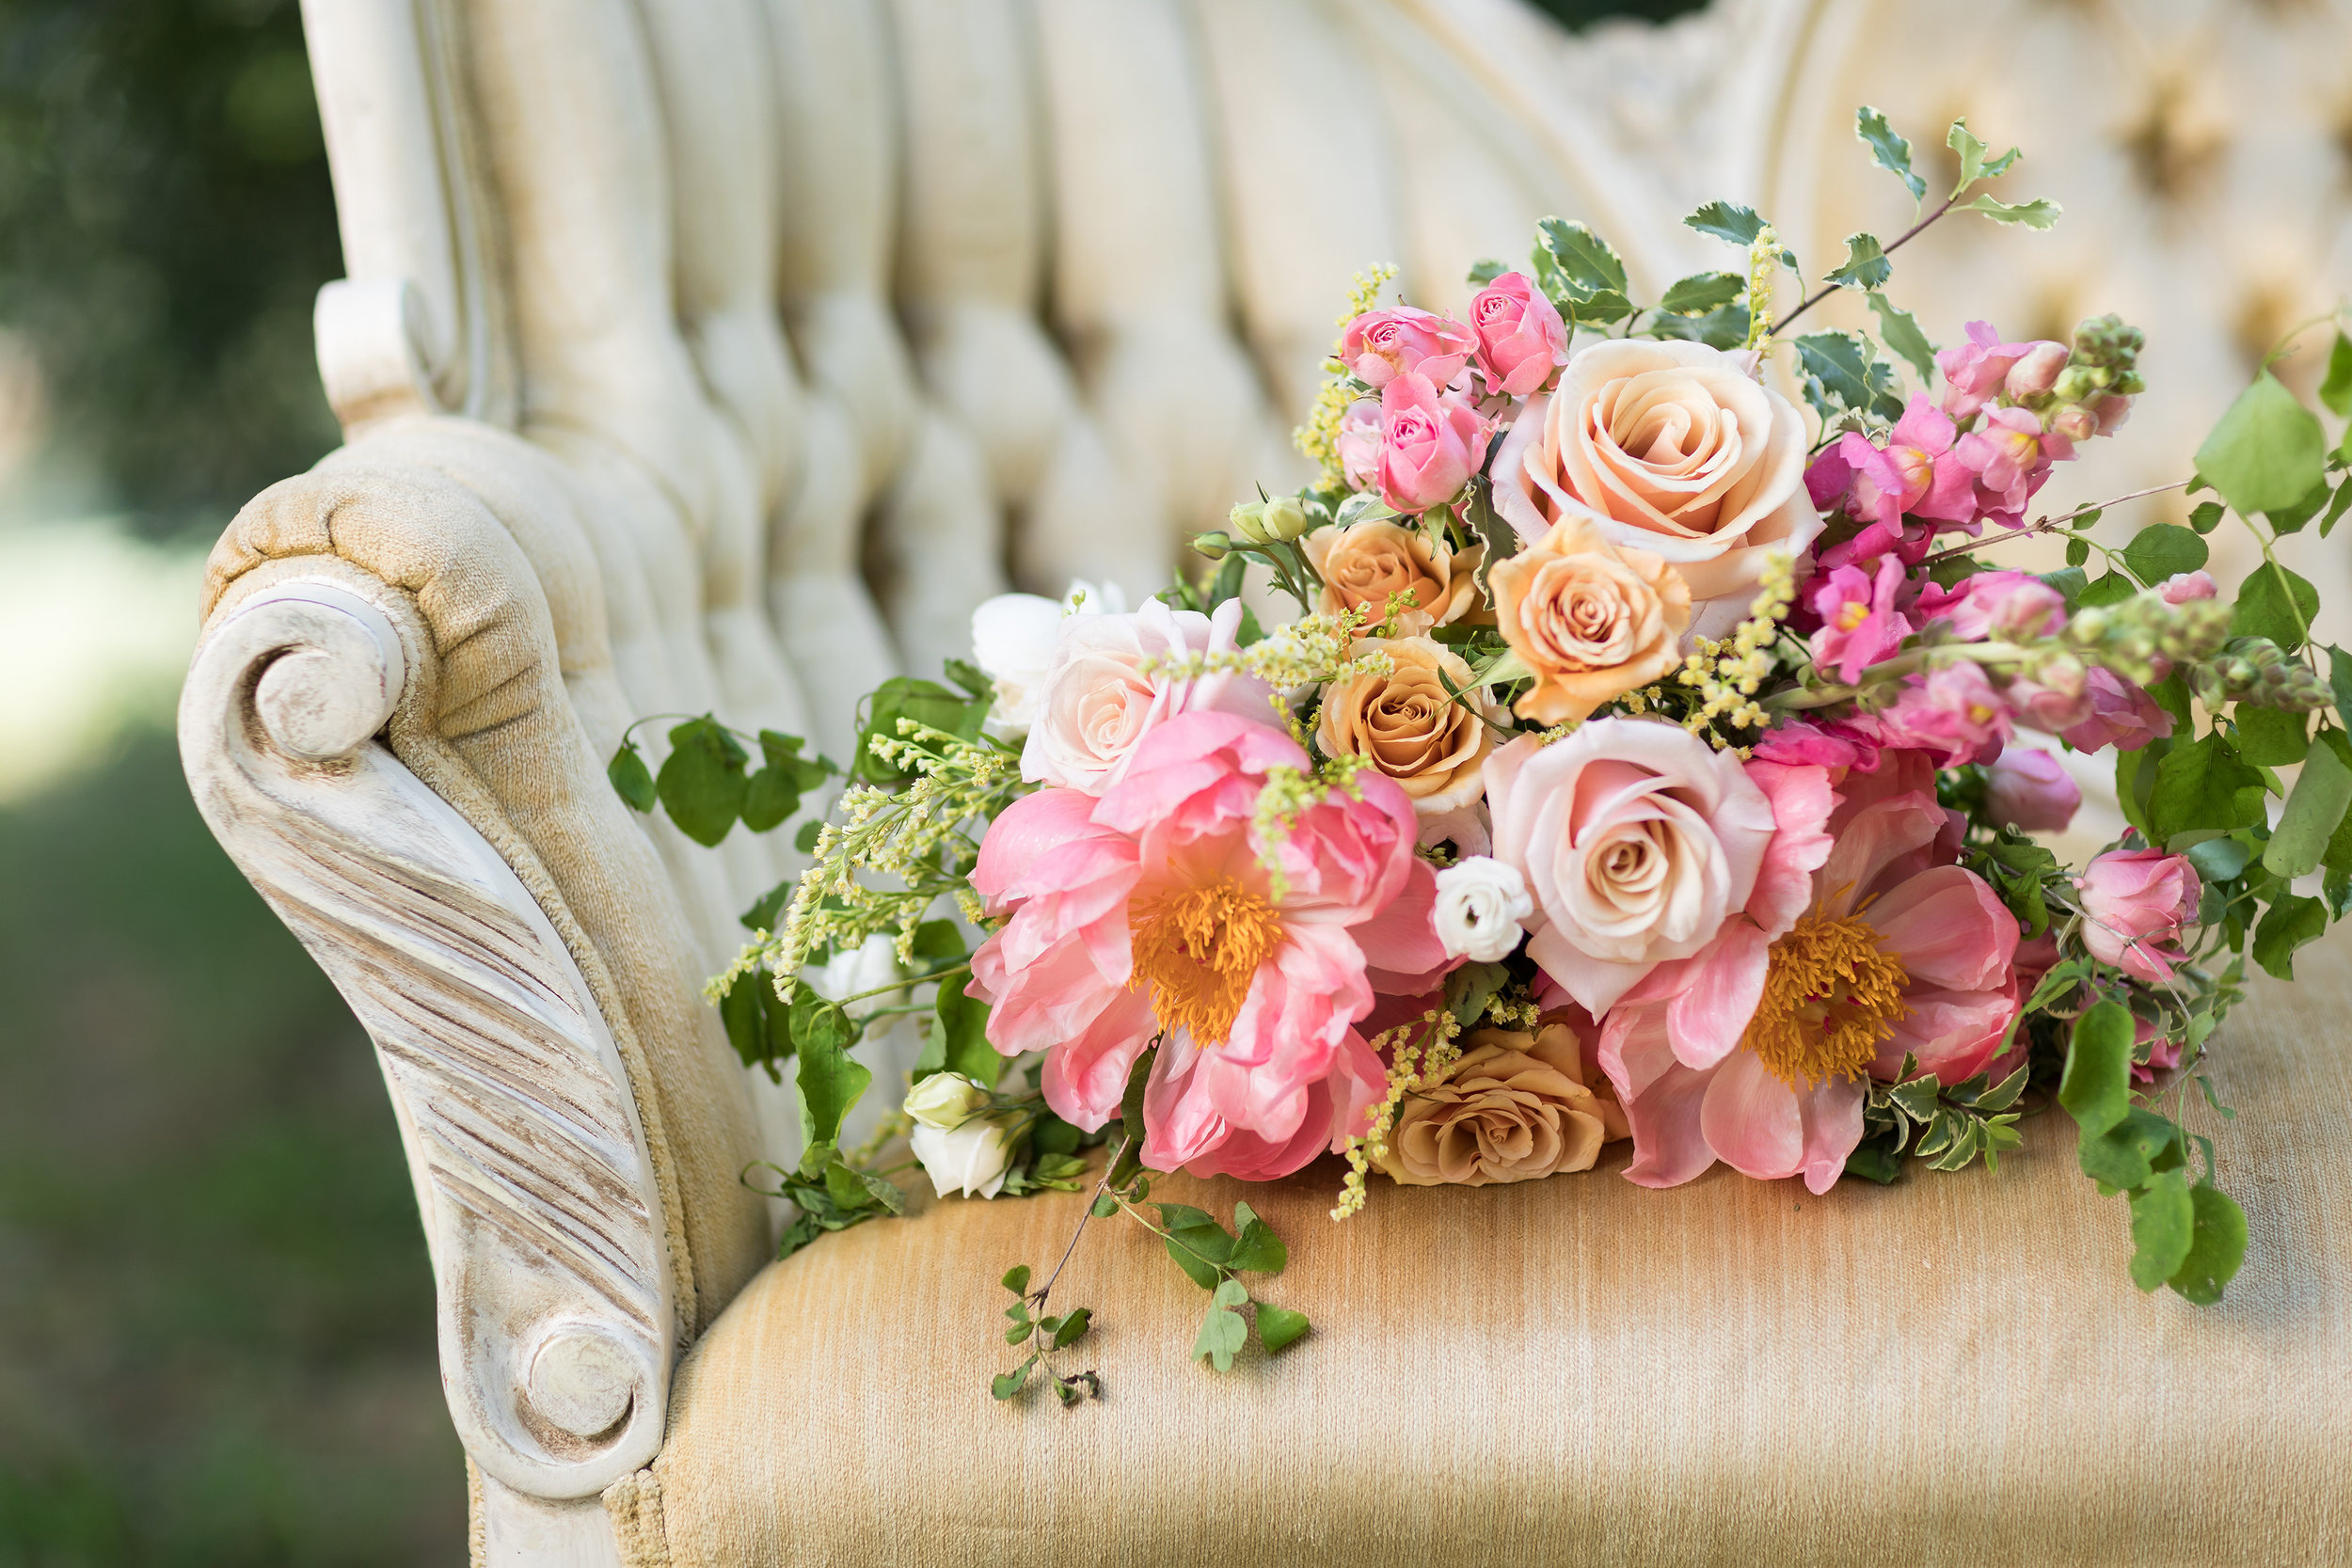 ! Decor by Sundrop Vintage Bringing the outside in Wedding Trend 2019.jpg